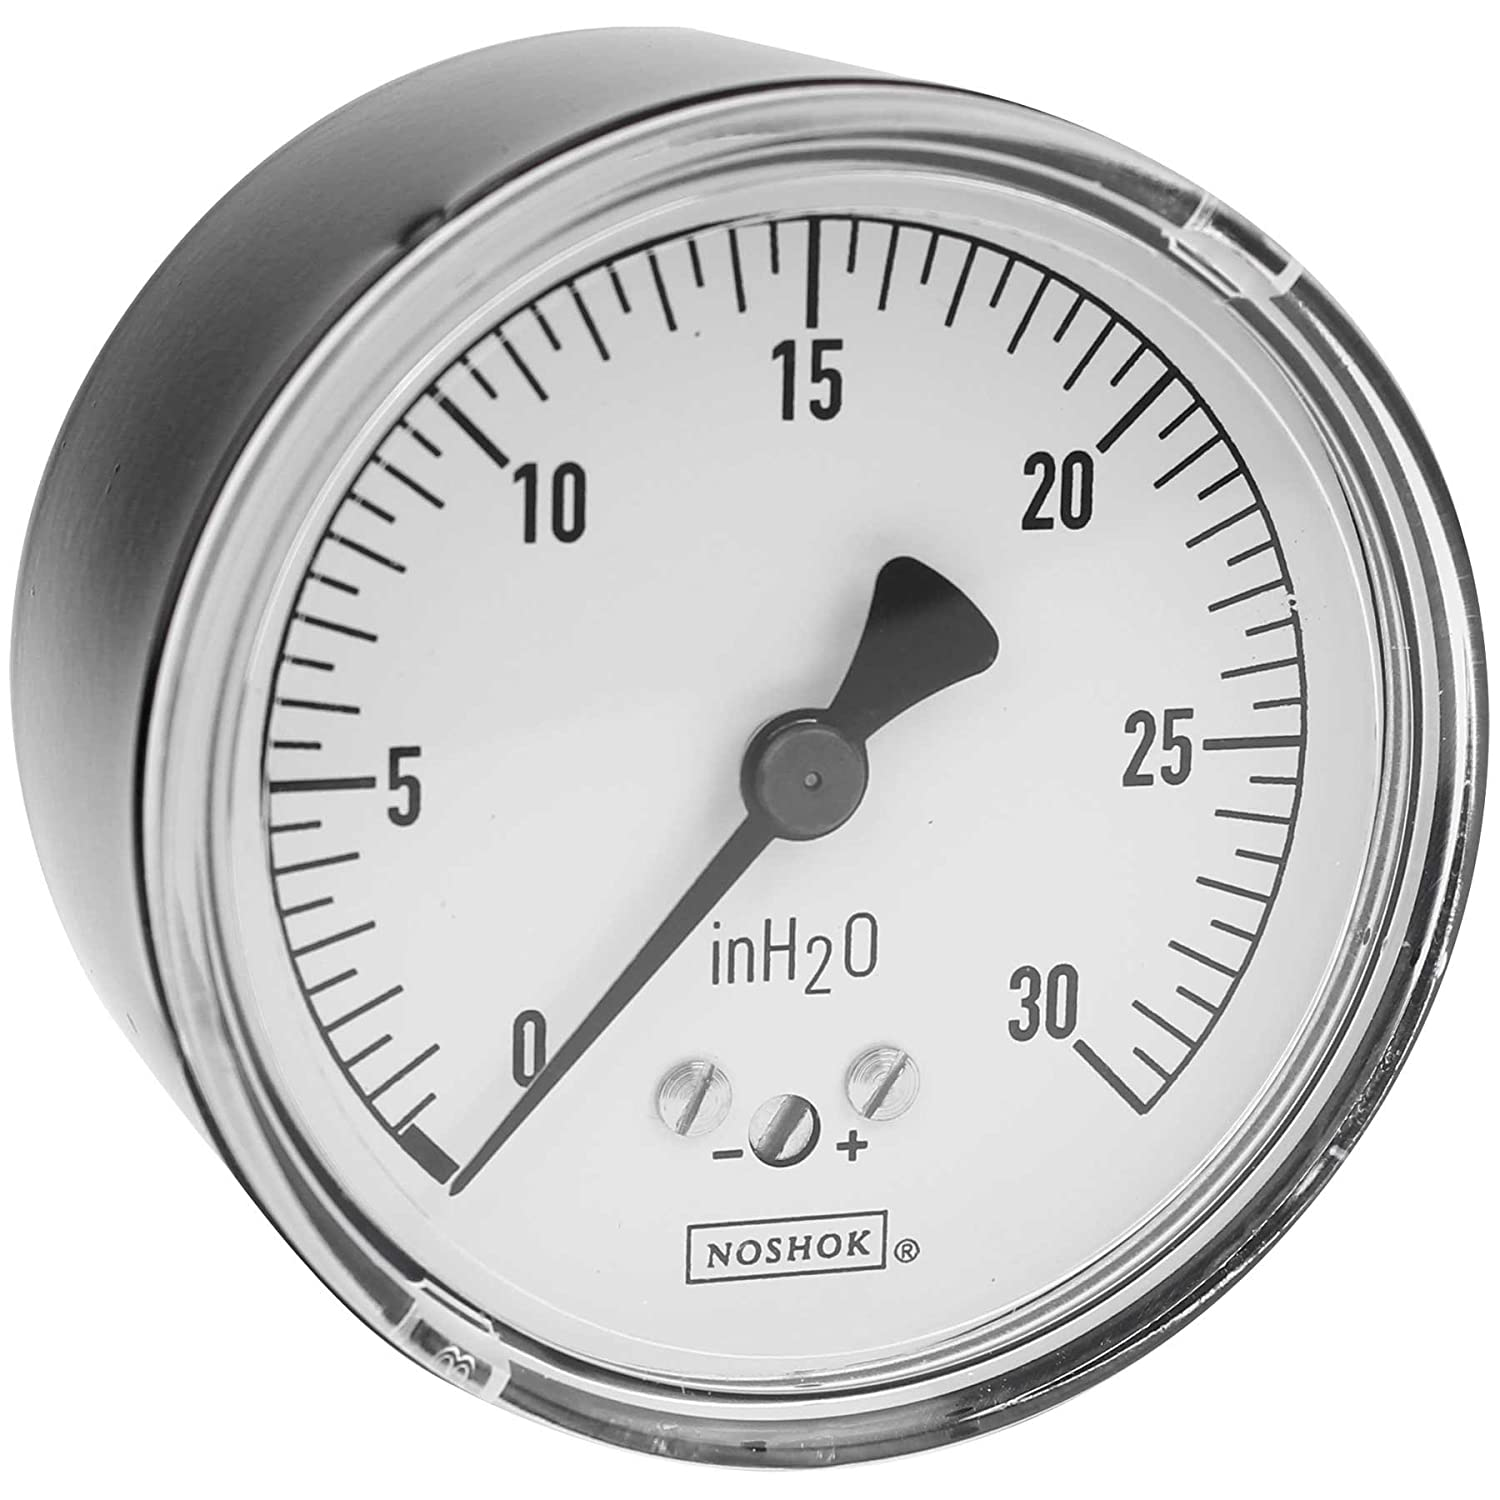 NOSHOK 200 Series Steel Dry Dial Indicating Low Pressure Diaphragm Gauge with Back Mount, 2-1/2